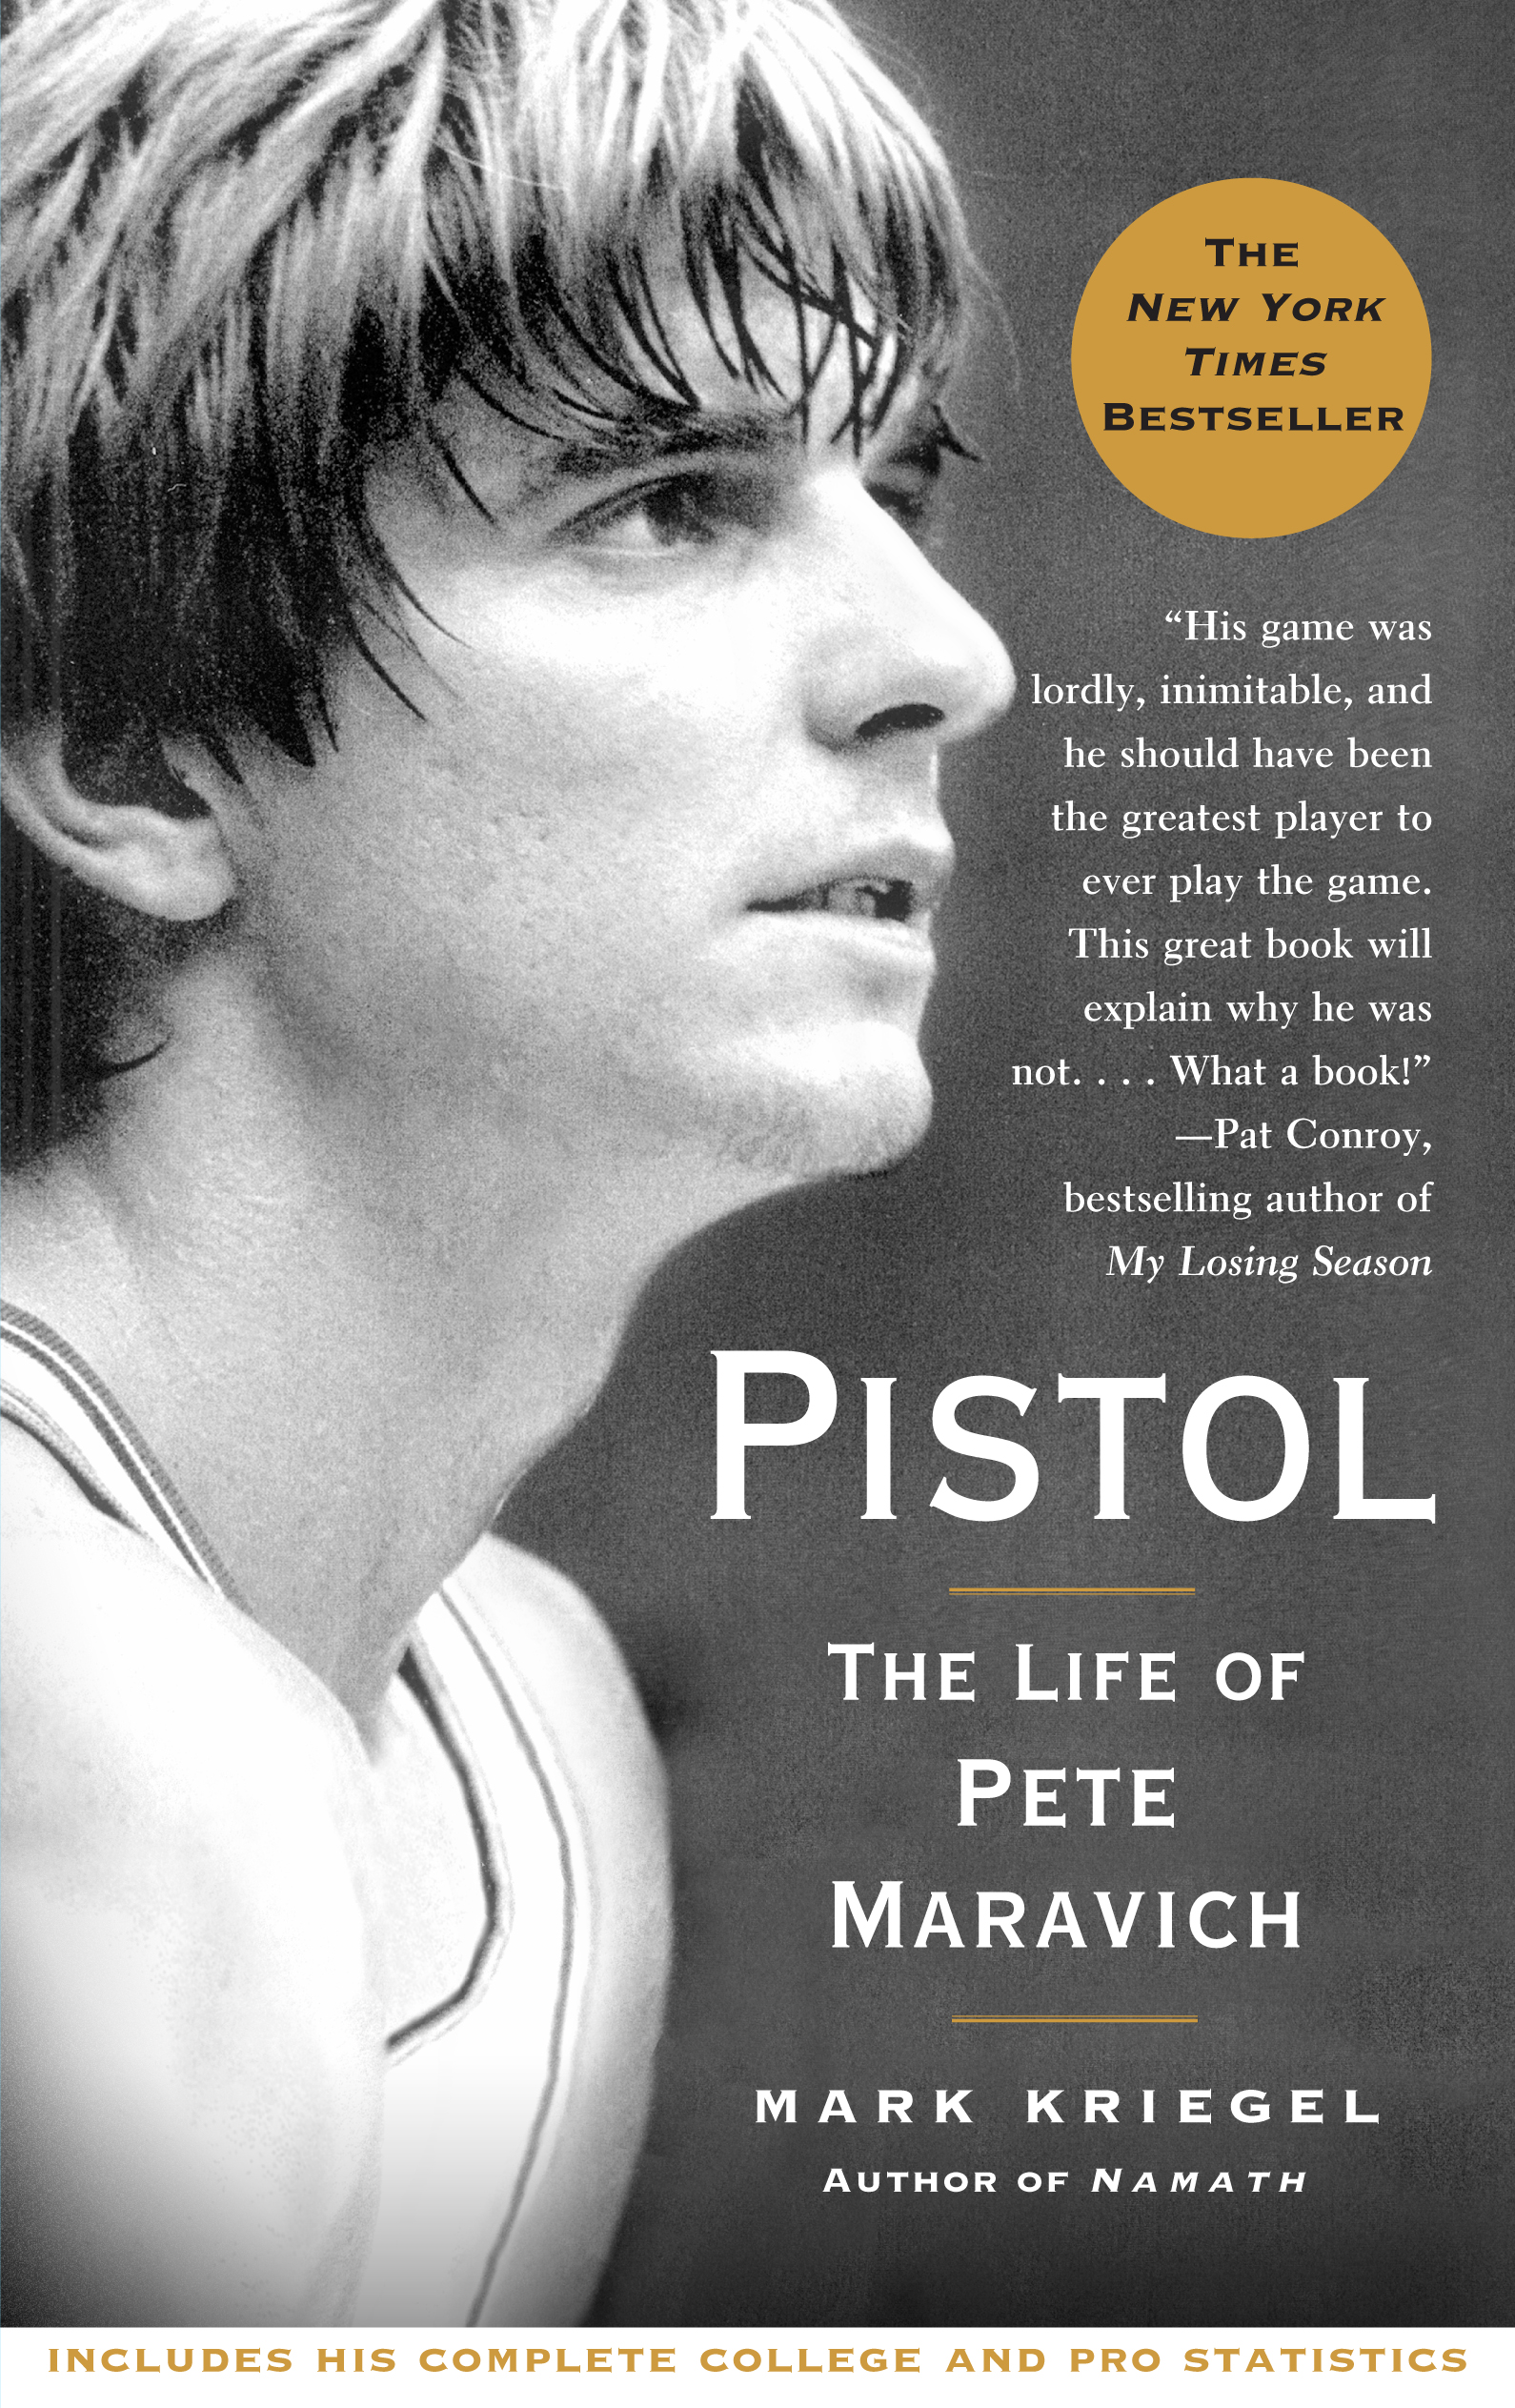 Pistol Book by Mark Kriegel ficial Publisher Page